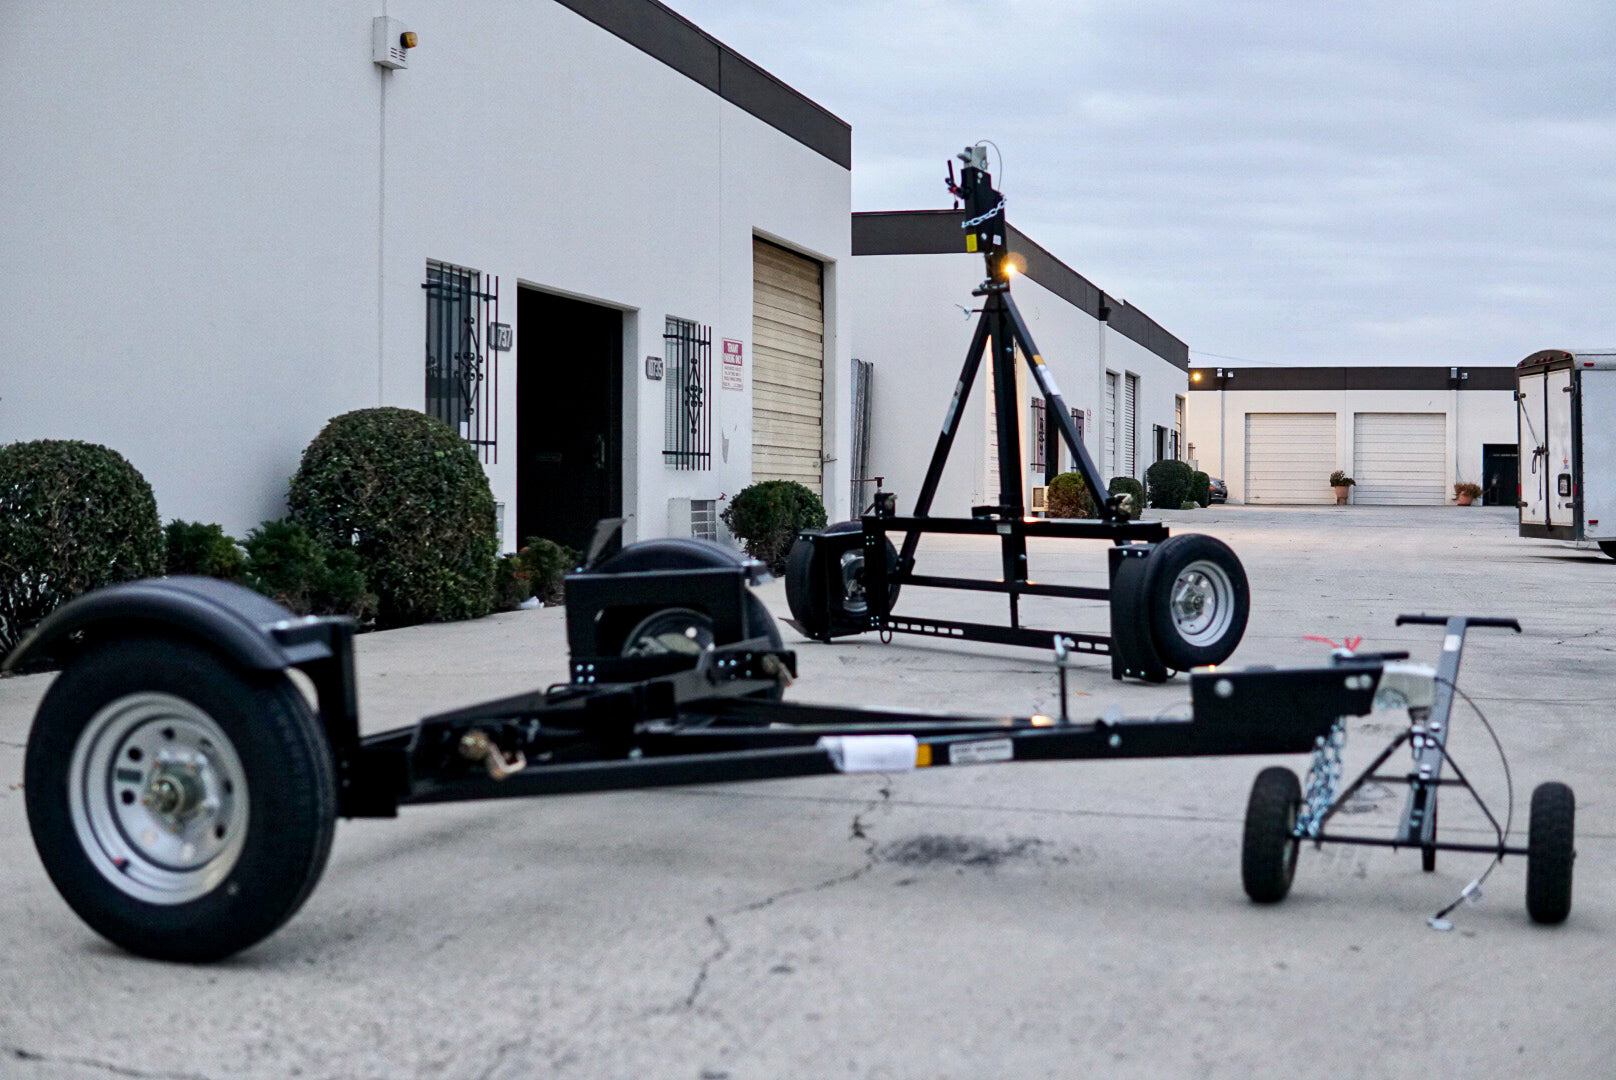 car tow dolly stands for storage, Tow smart trailers car dolly for sale to the public, Powder coated original standup tow dolly